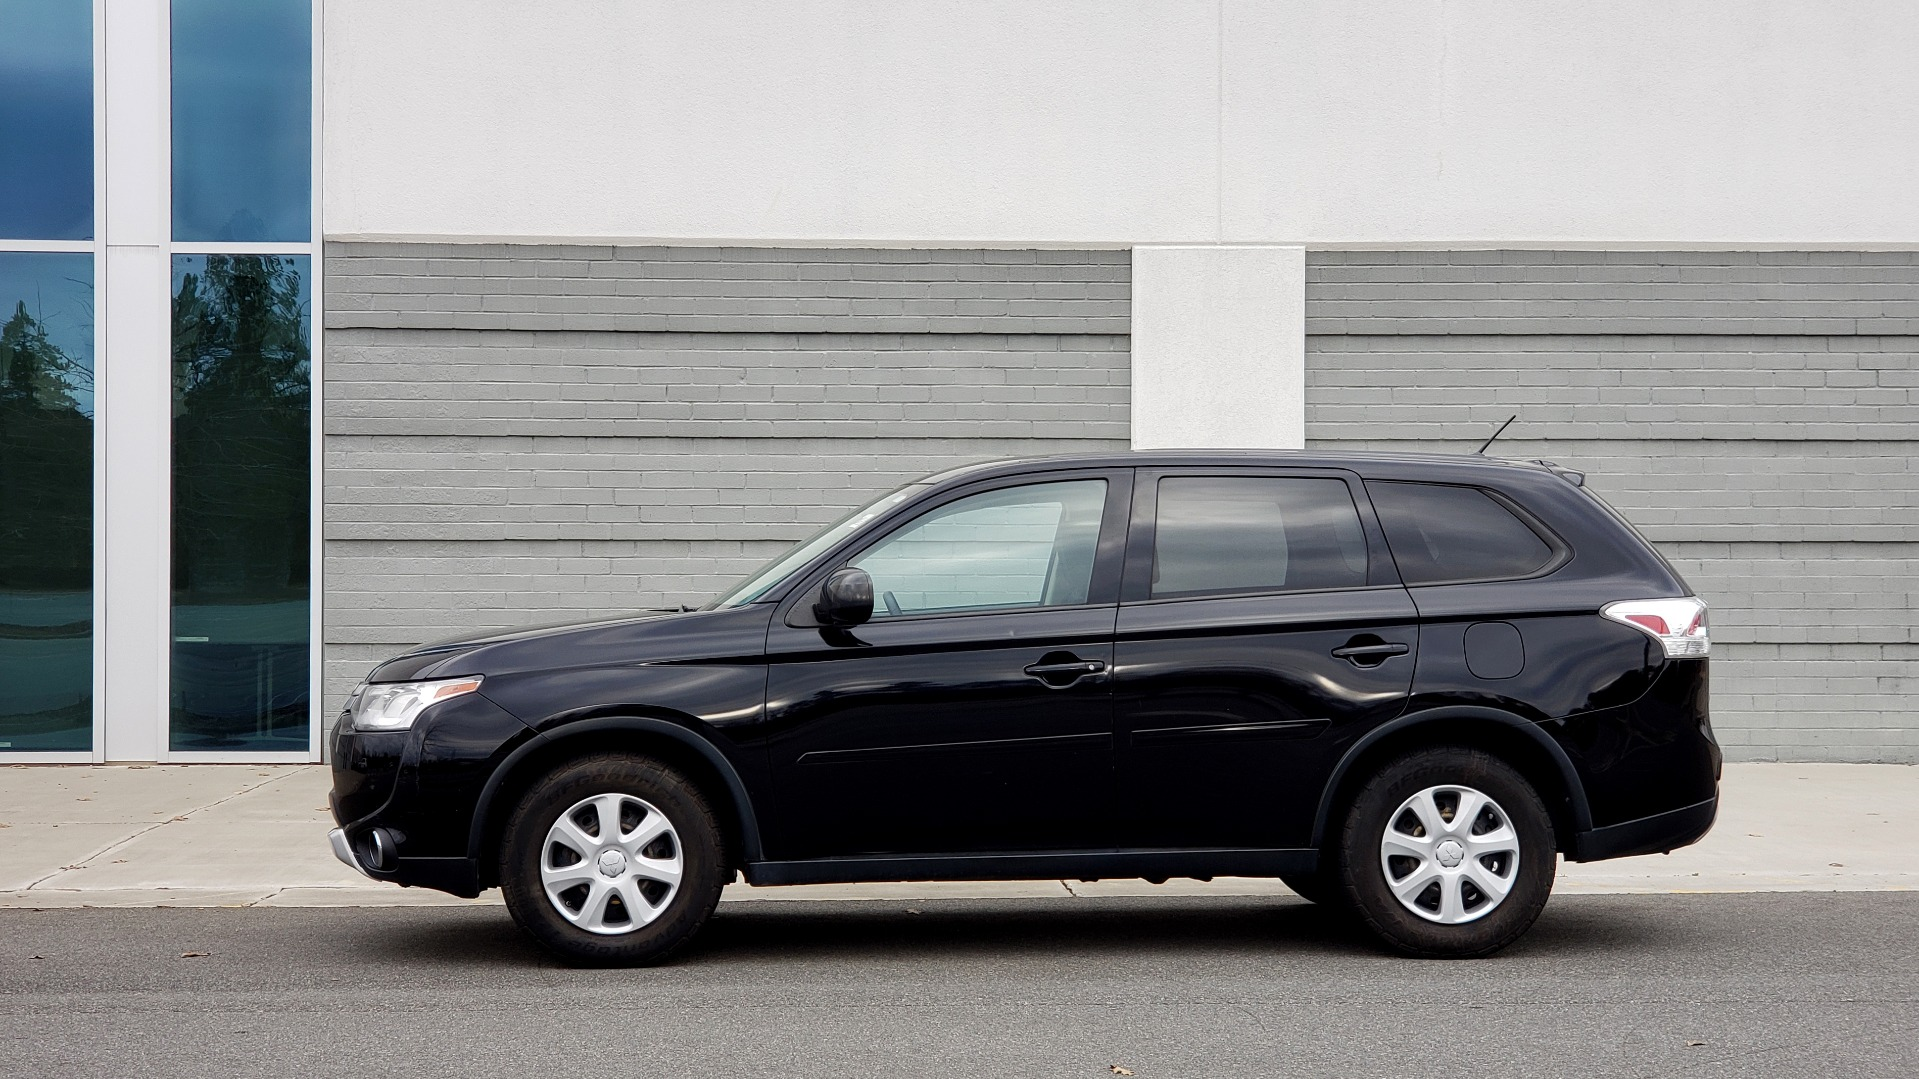 Used 2015 Mitsubishi OUTLANDER ES 2.4L SUV / CVT / FWD / KEYLESS ENTRY / 16-IN WHEELS for sale $12,995 at Formula Imports in Charlotte NC 28227 2